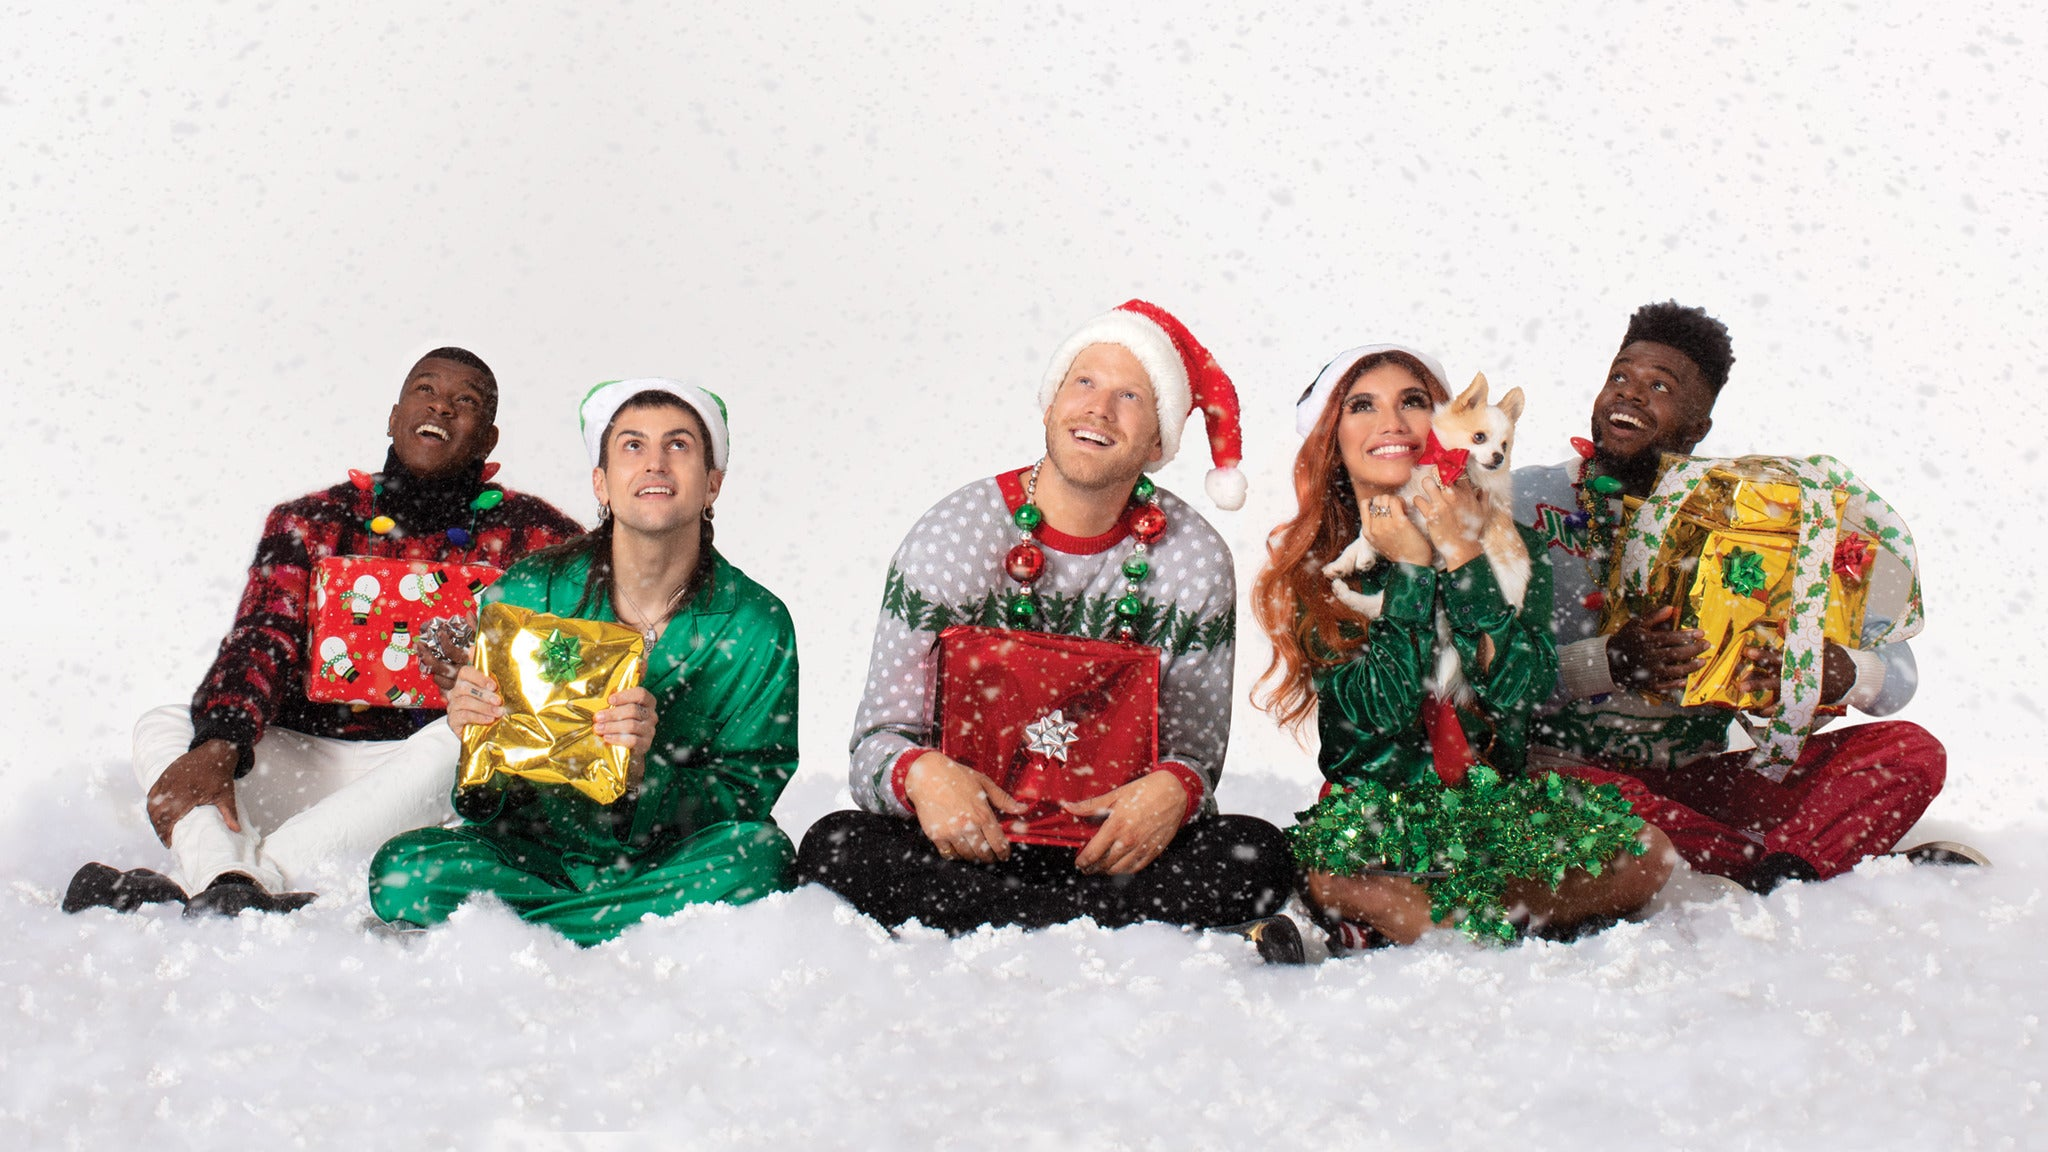 Pentatonix Christmas Youtube.Pentatonix Tickets Pentatonix Concert Tickets Tour Dates